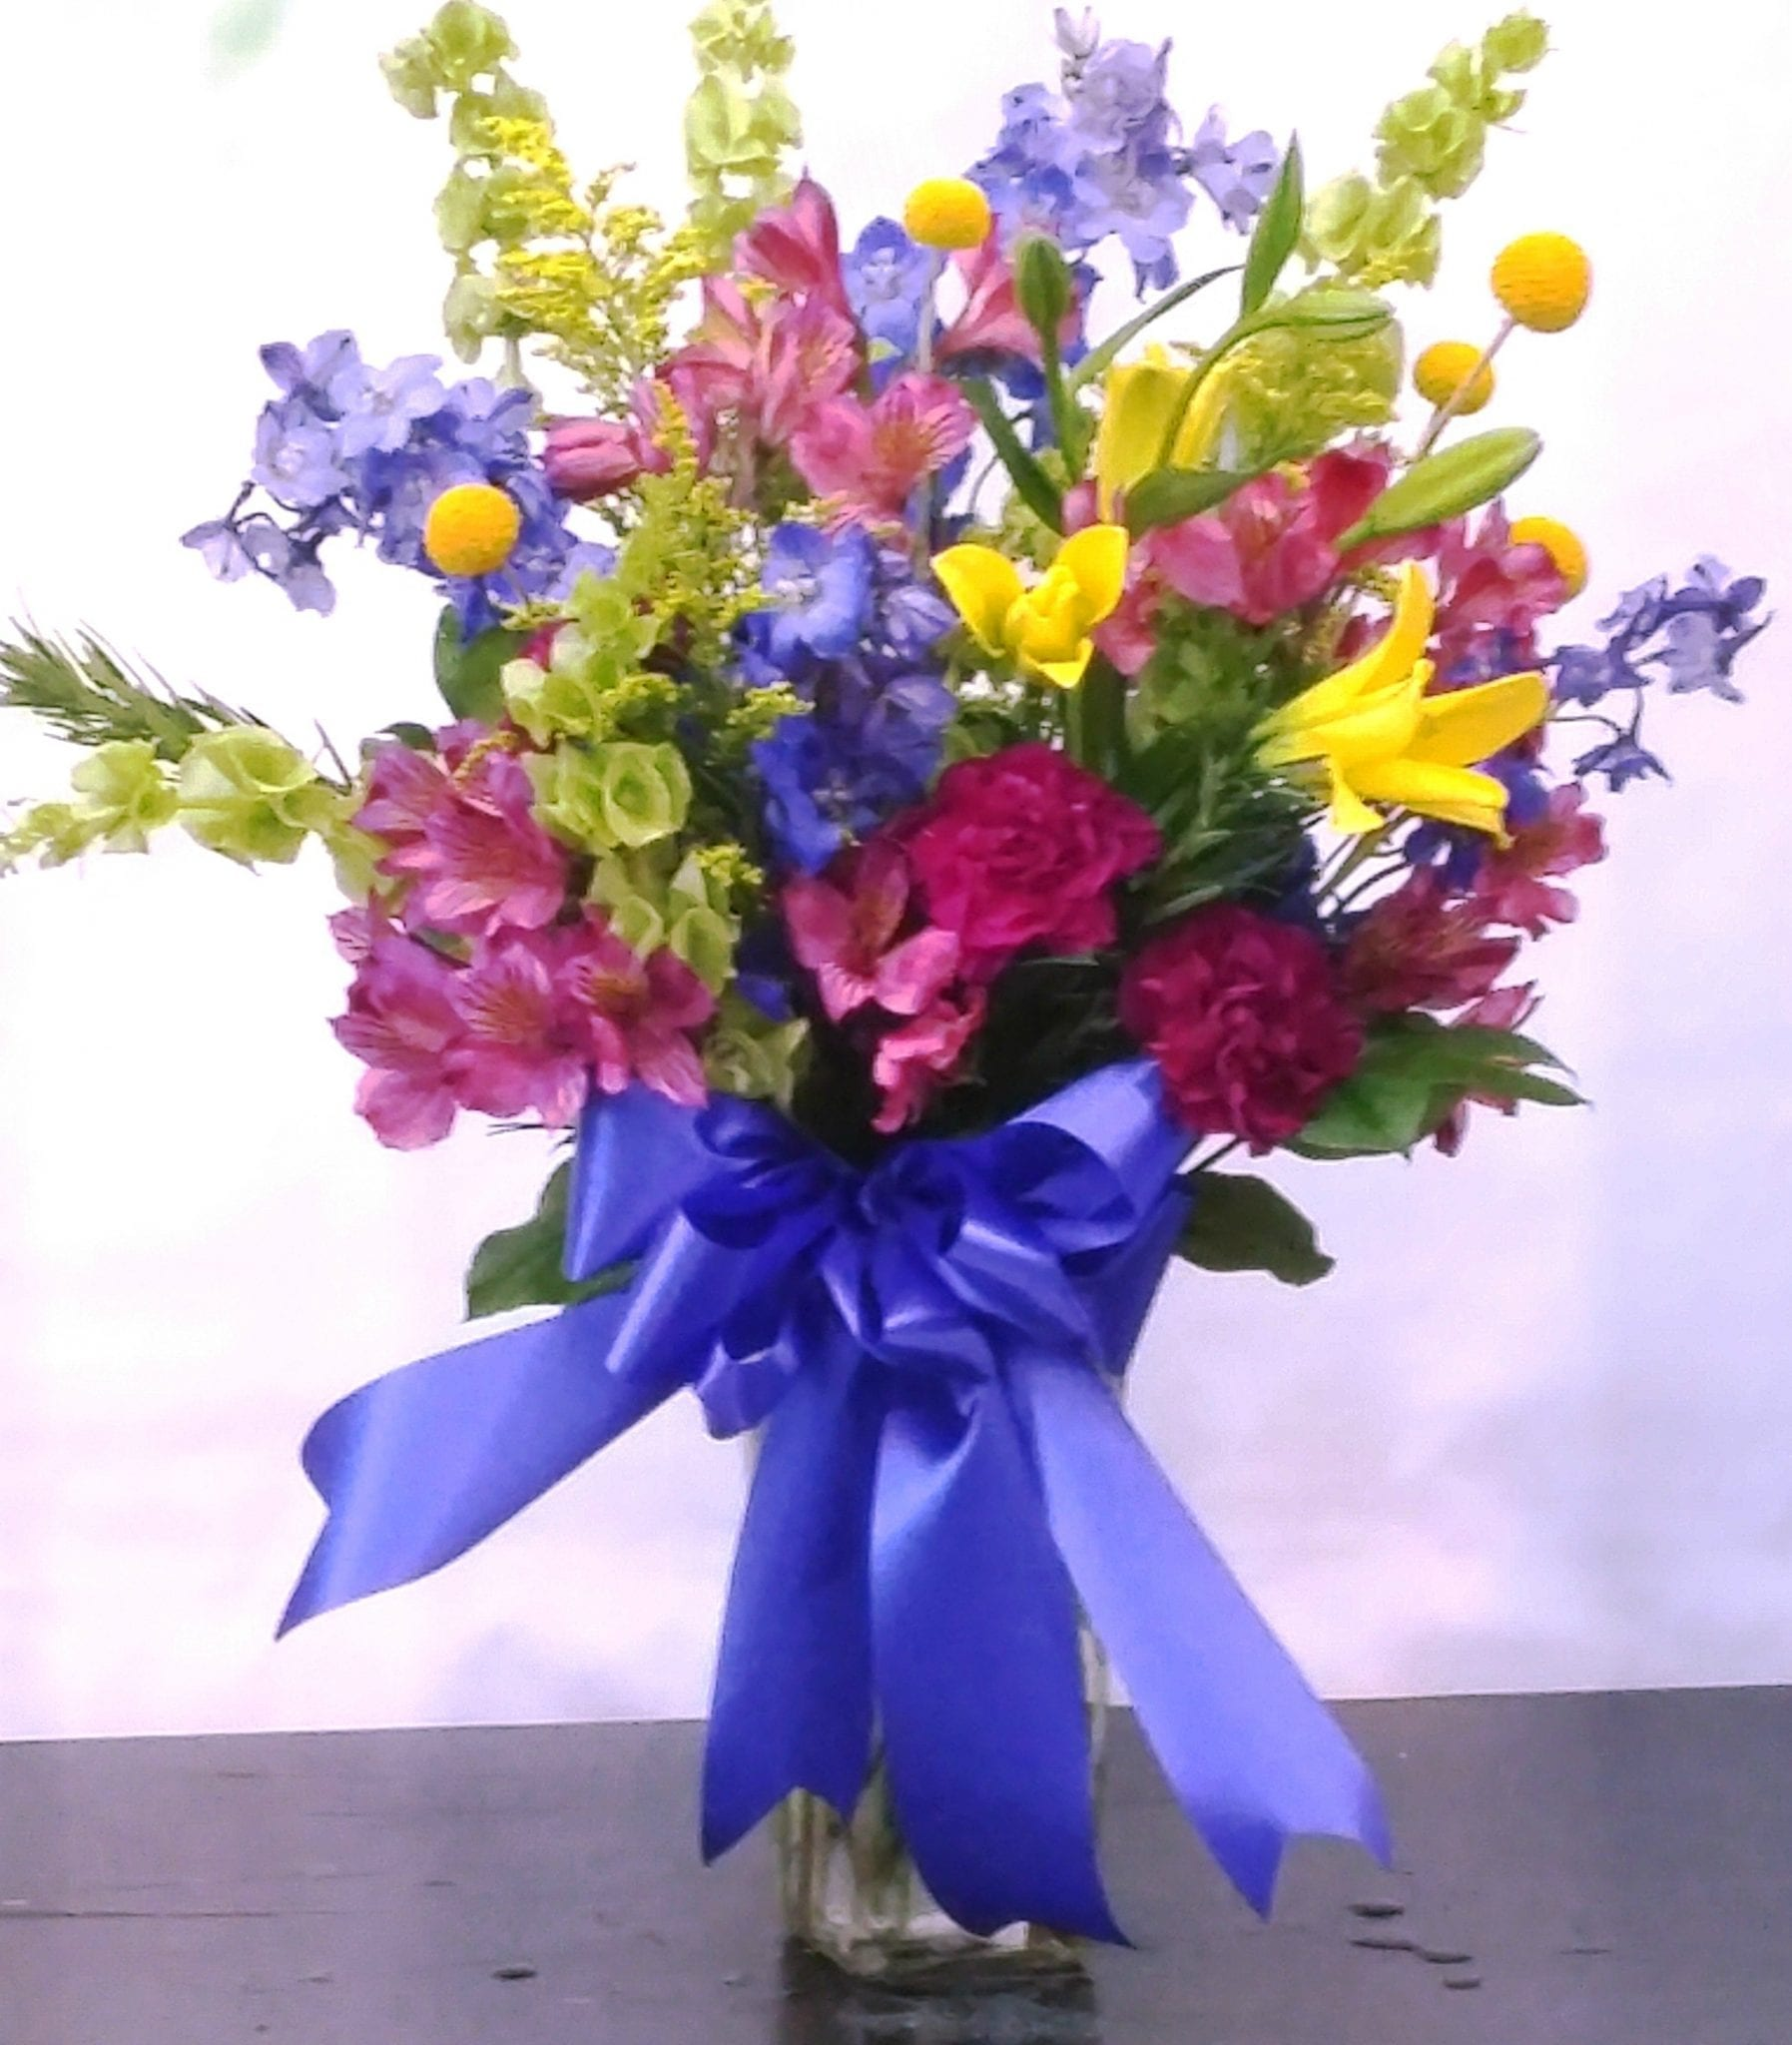 SAME DAY DELIVERY Bright Tribute in a Vase Fiesta Flowers Plants & Gifts